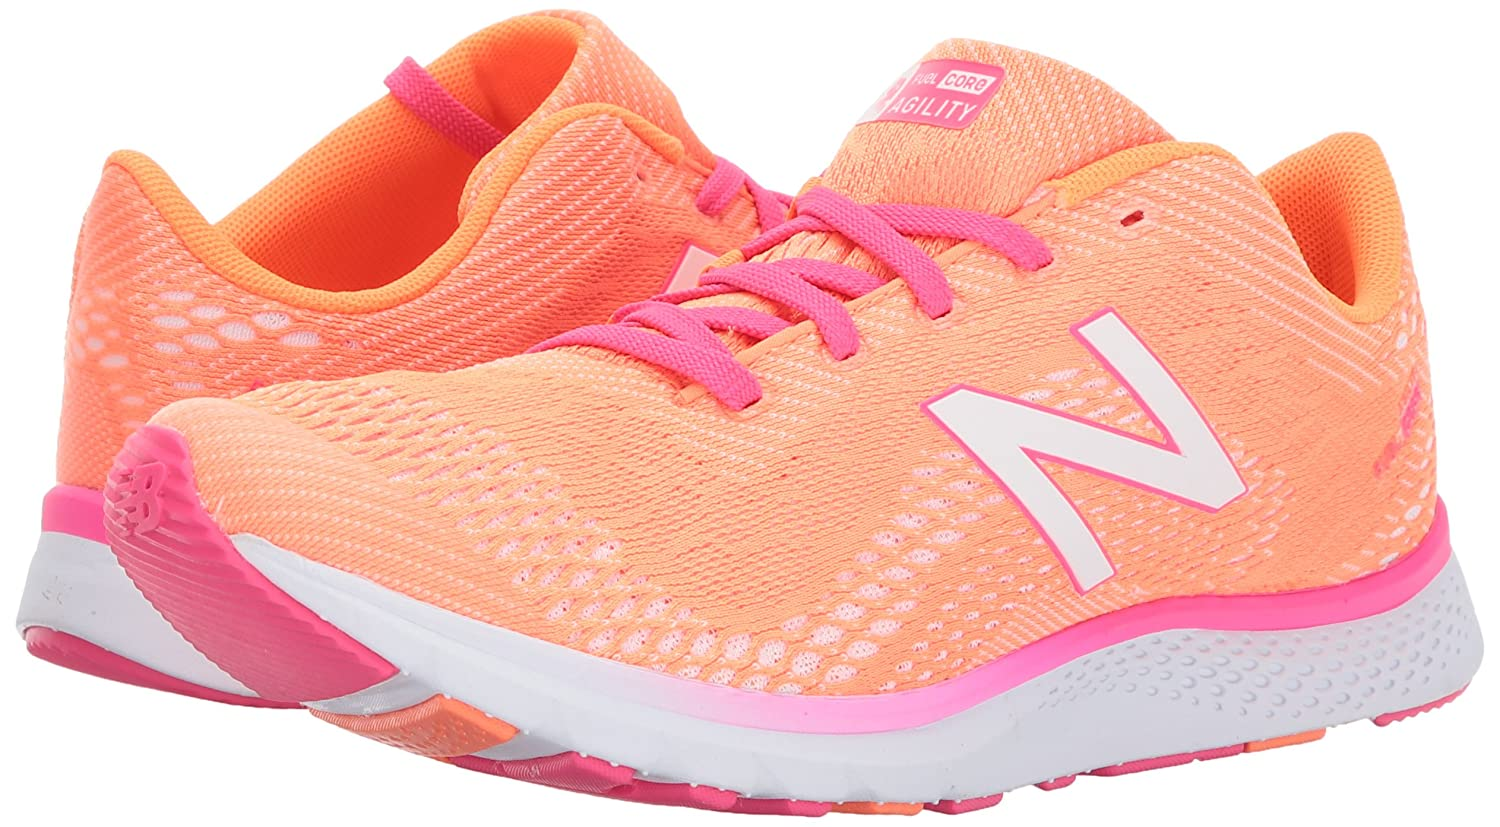 New Balance Women's FuelCore Agility v2 Cross Trainer B01N66HR24 7.5 B(M) US|Vivid Tangerine